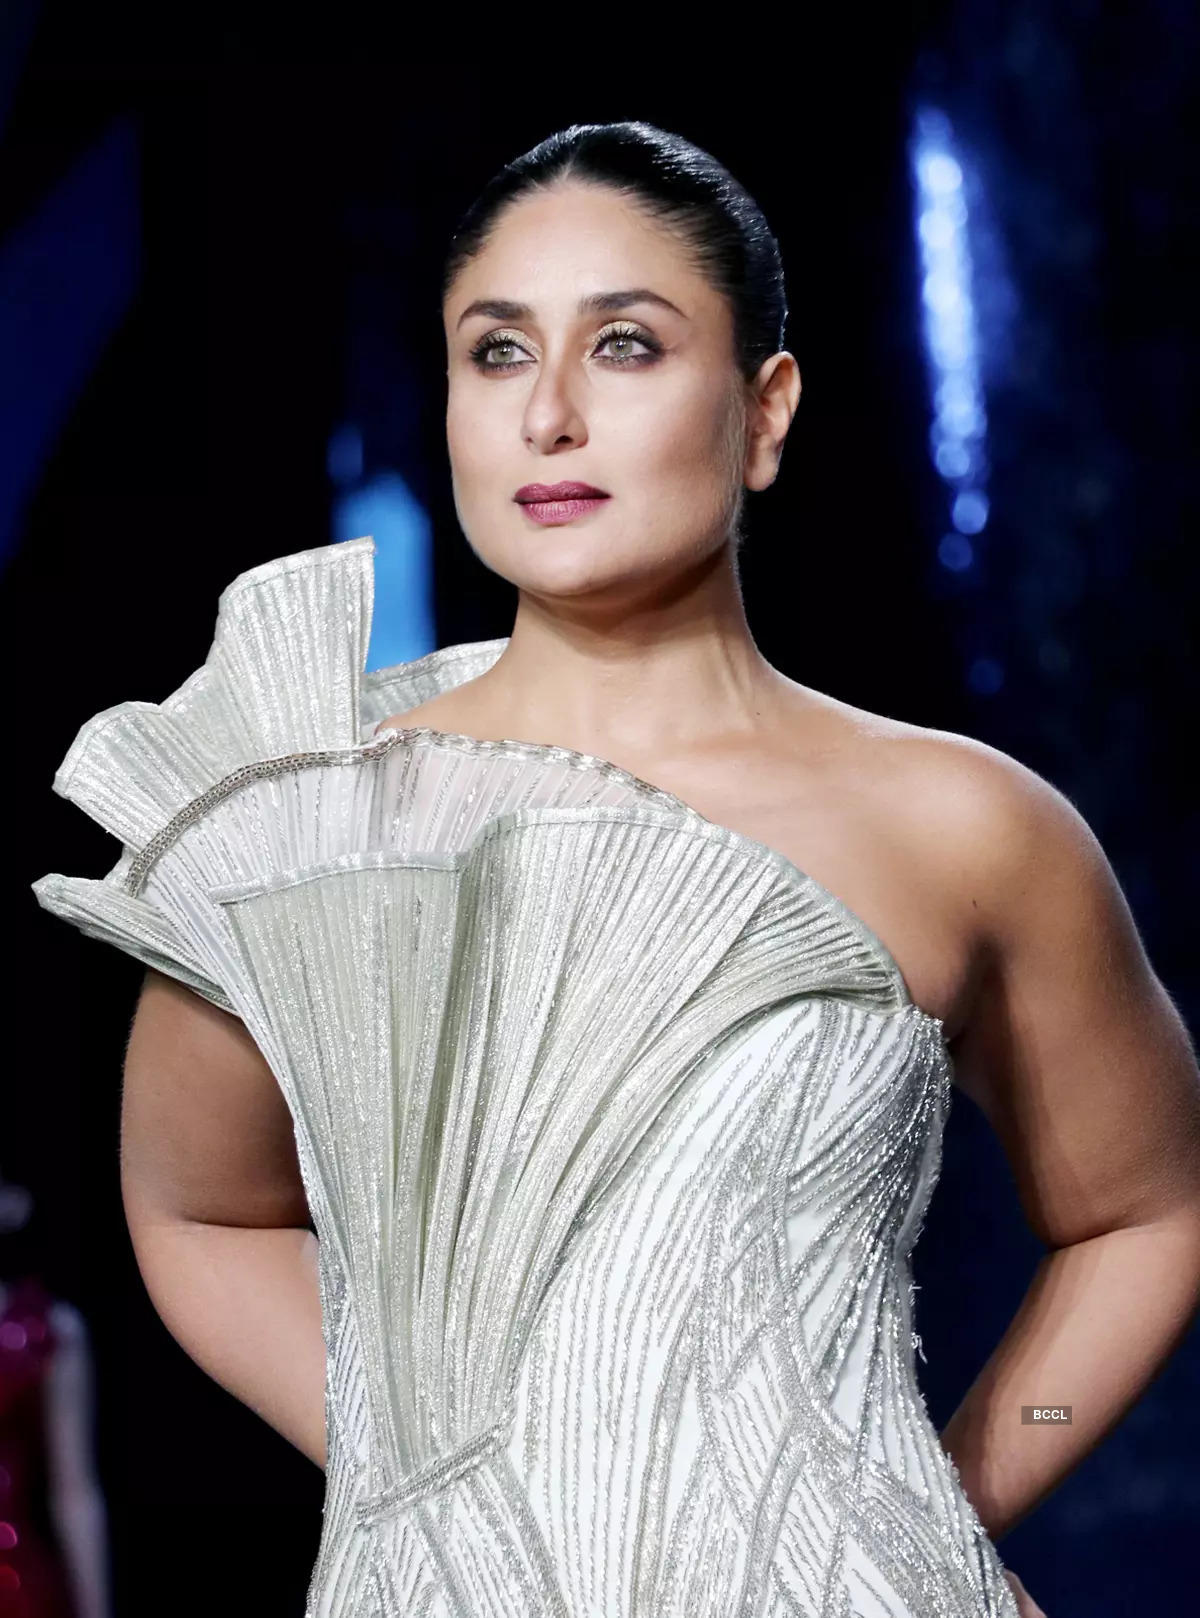 Bollywood celebrities showcase designer outfits at a fashion show